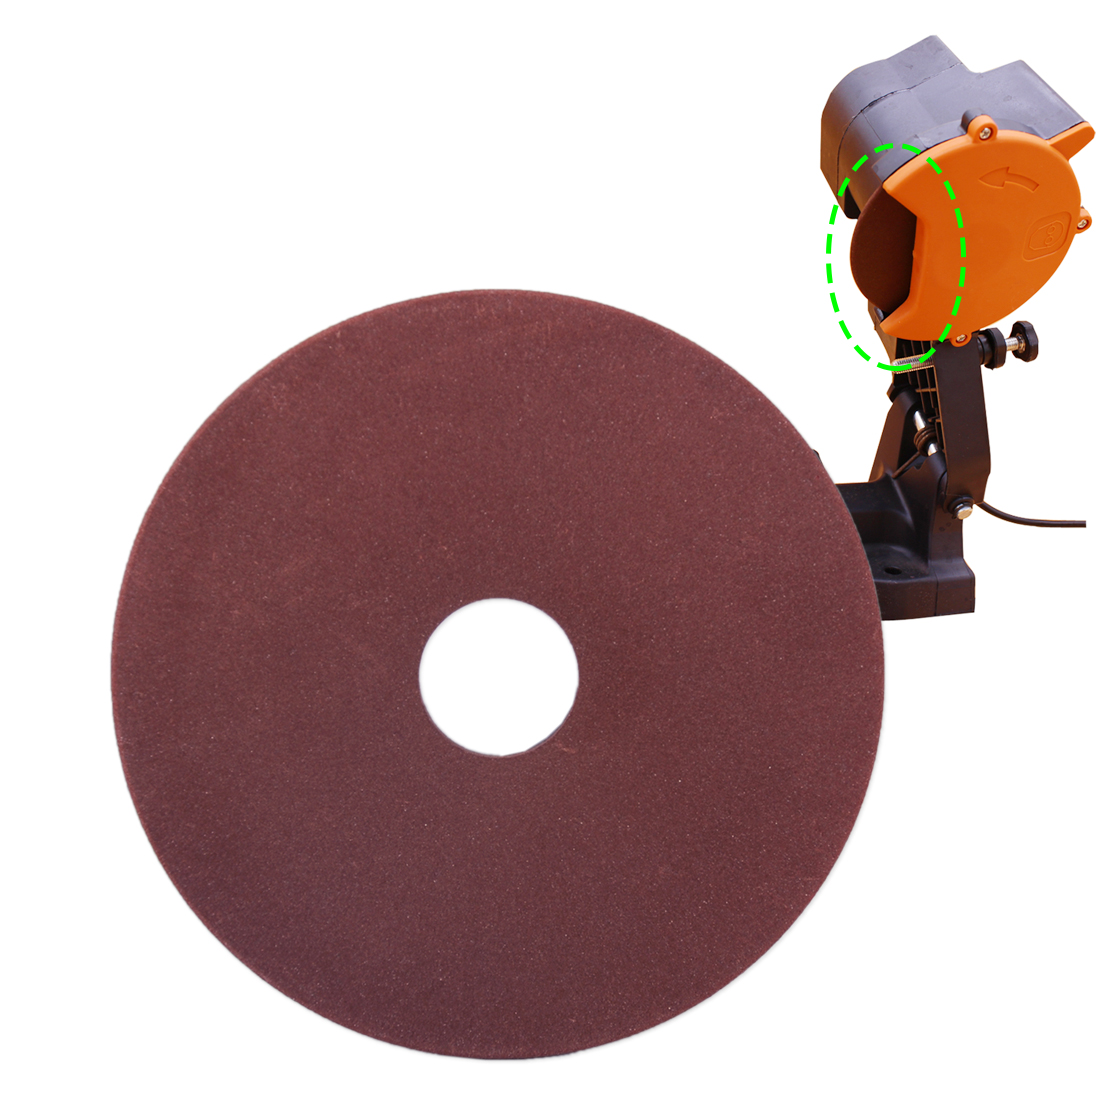 Grinding Wheel 105mm x 22mm Metal Grinding Wheel for 3//8 325 Pitch Chainsaw Sharpener Grinder